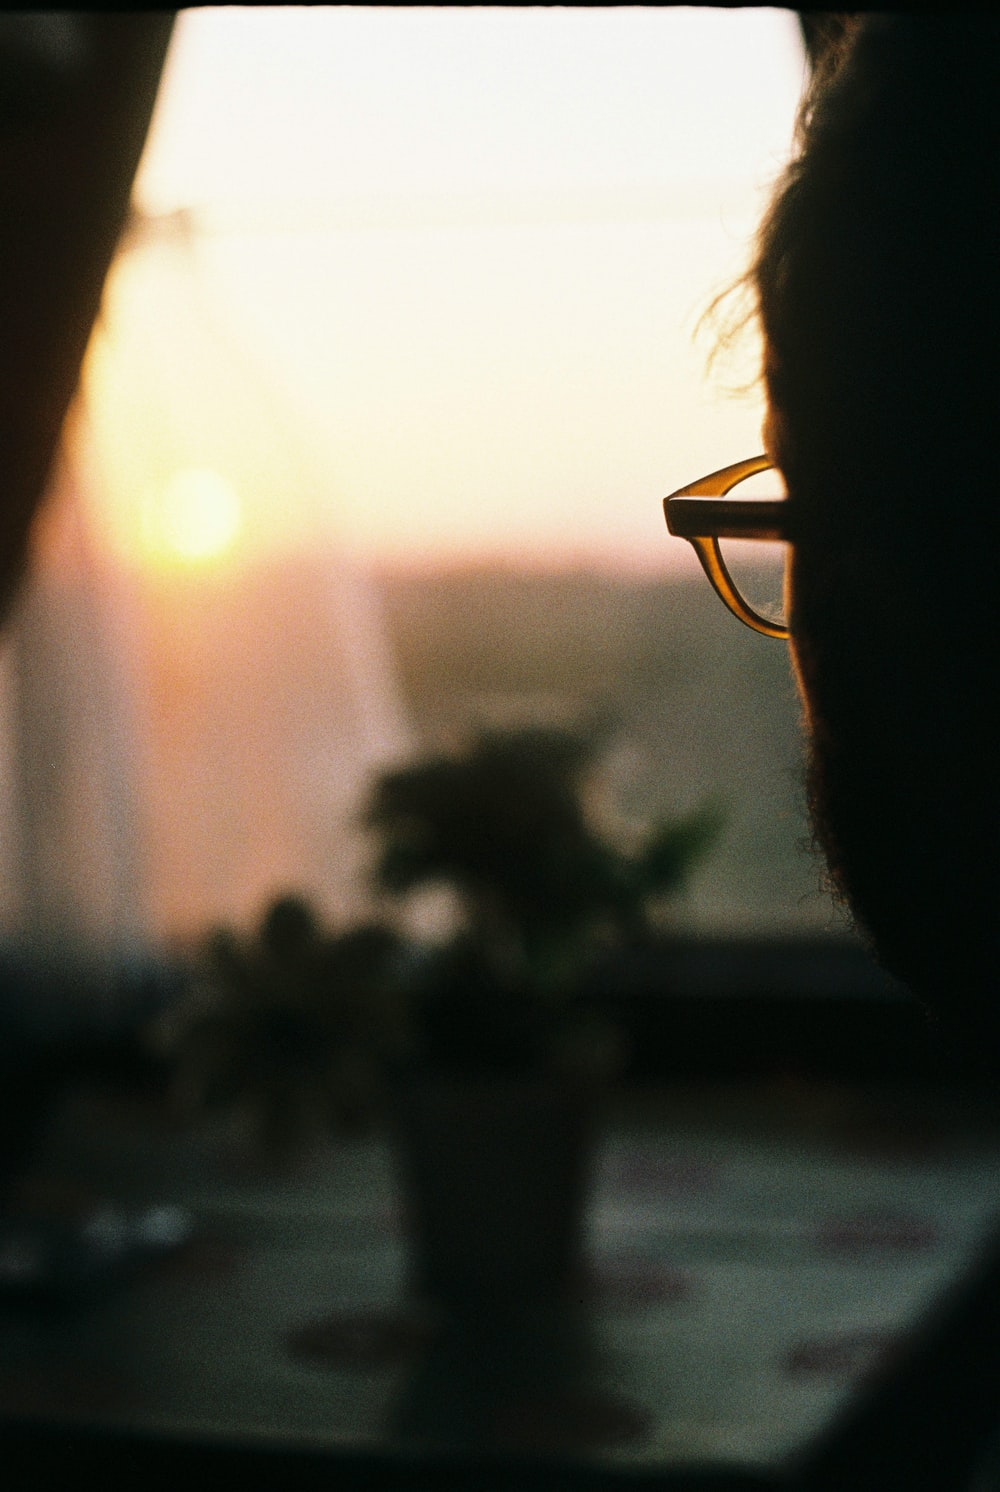 selective focus photography of man's eyeglasses